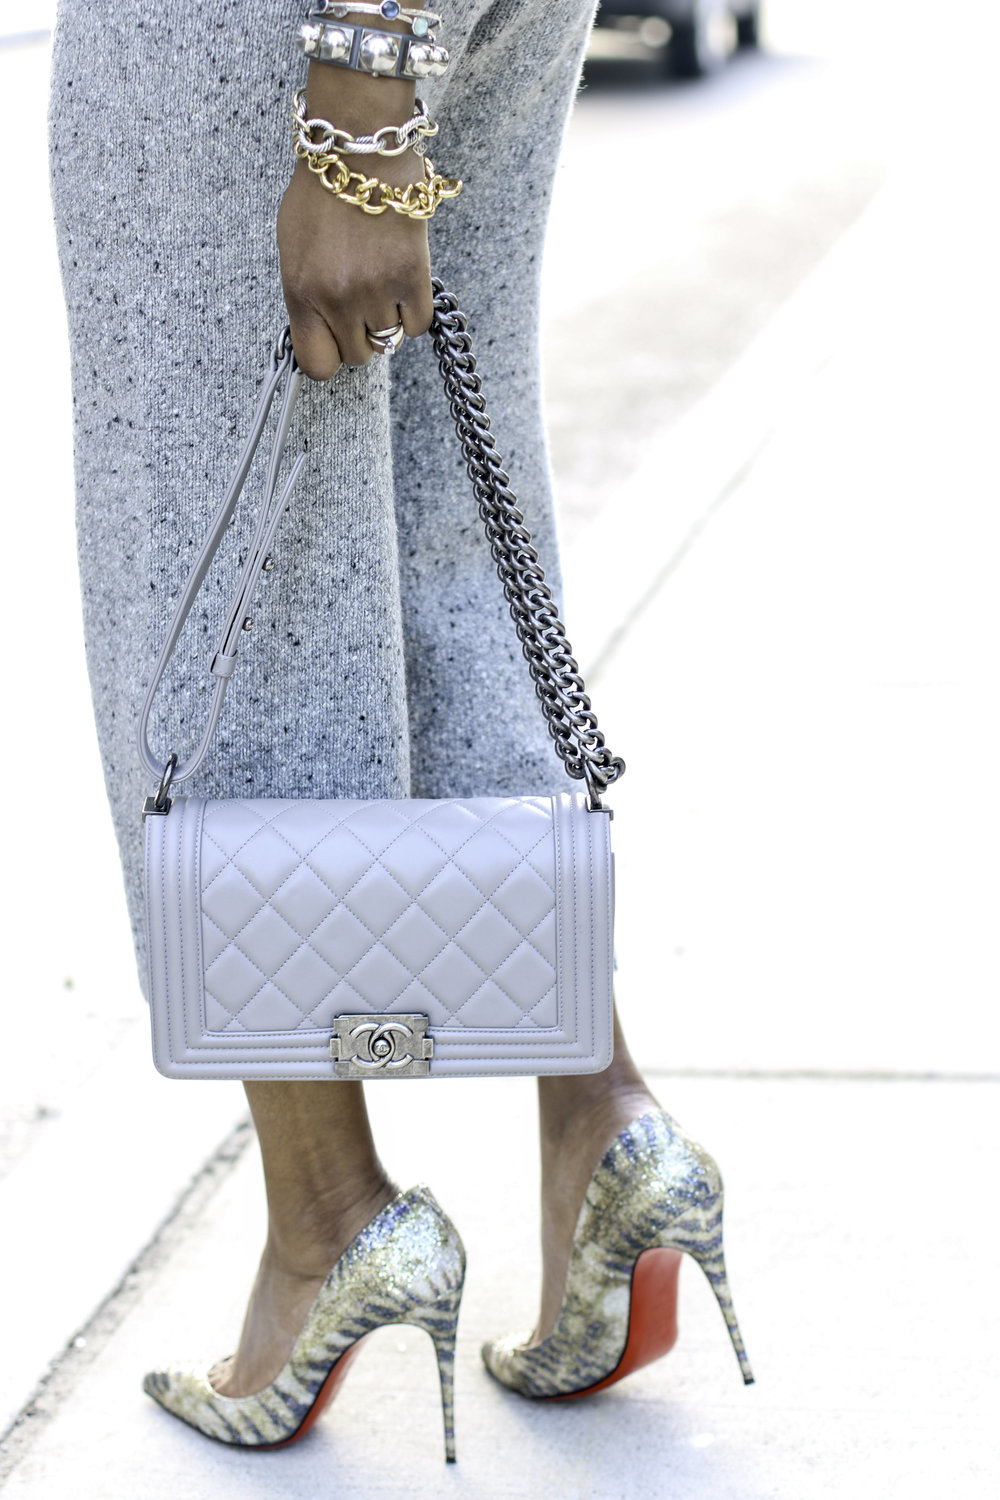 CHRISTIAN LOUBOUTIN PUMPS AND CHANEL BOY BAG.jpg